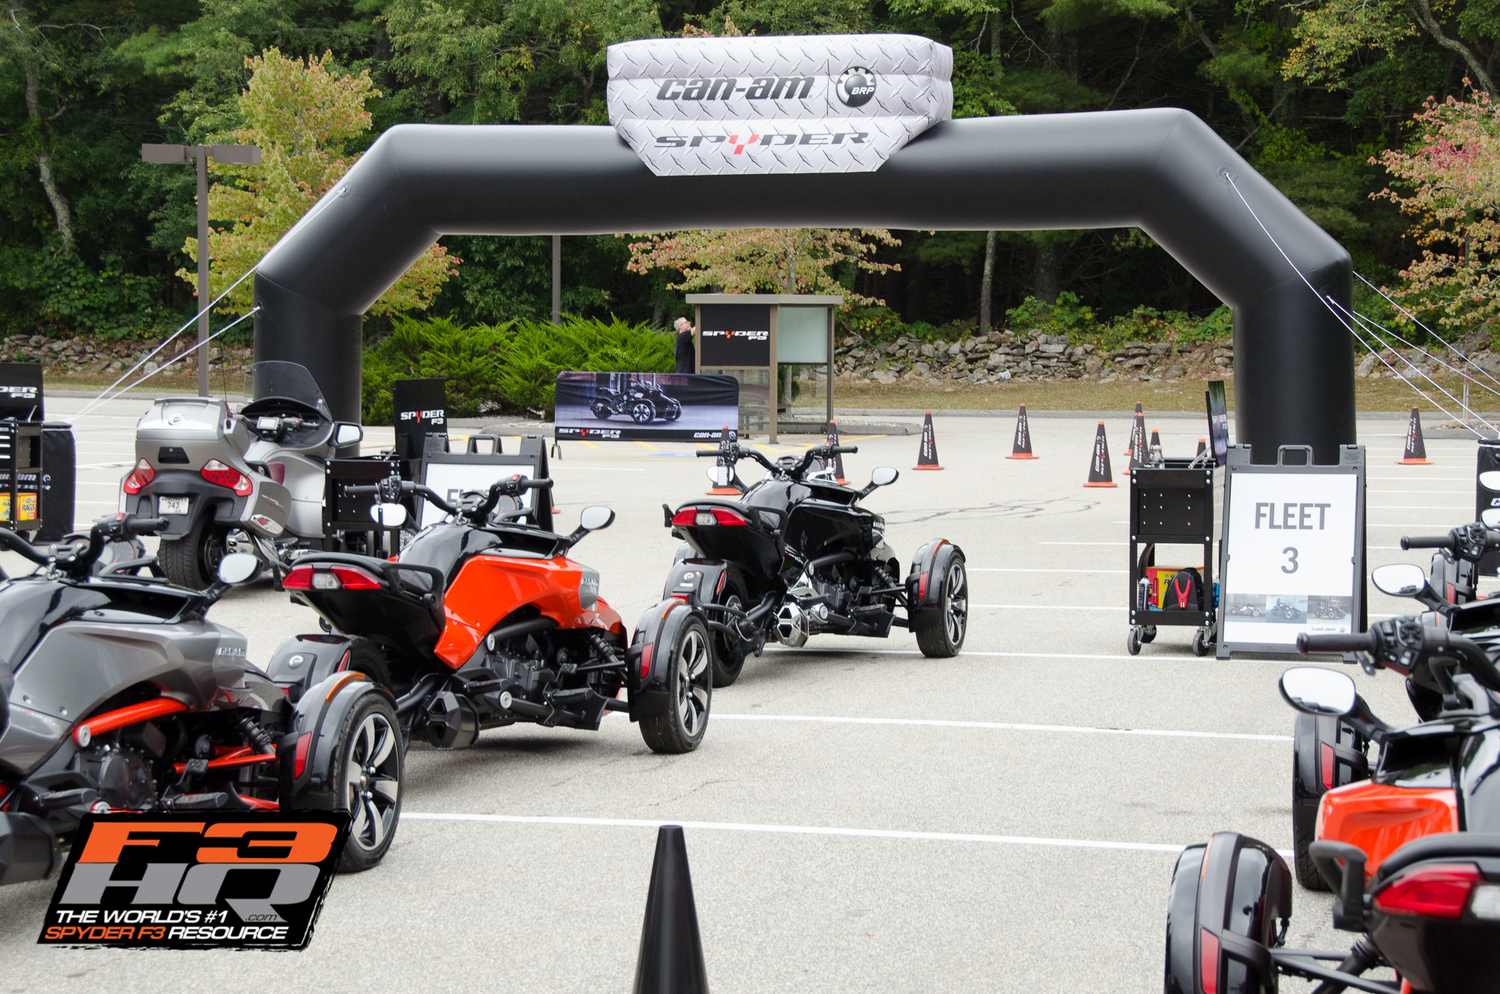 2014 Can-Am Spyder F3 - Product Launch and Ryde-54-32.jpg